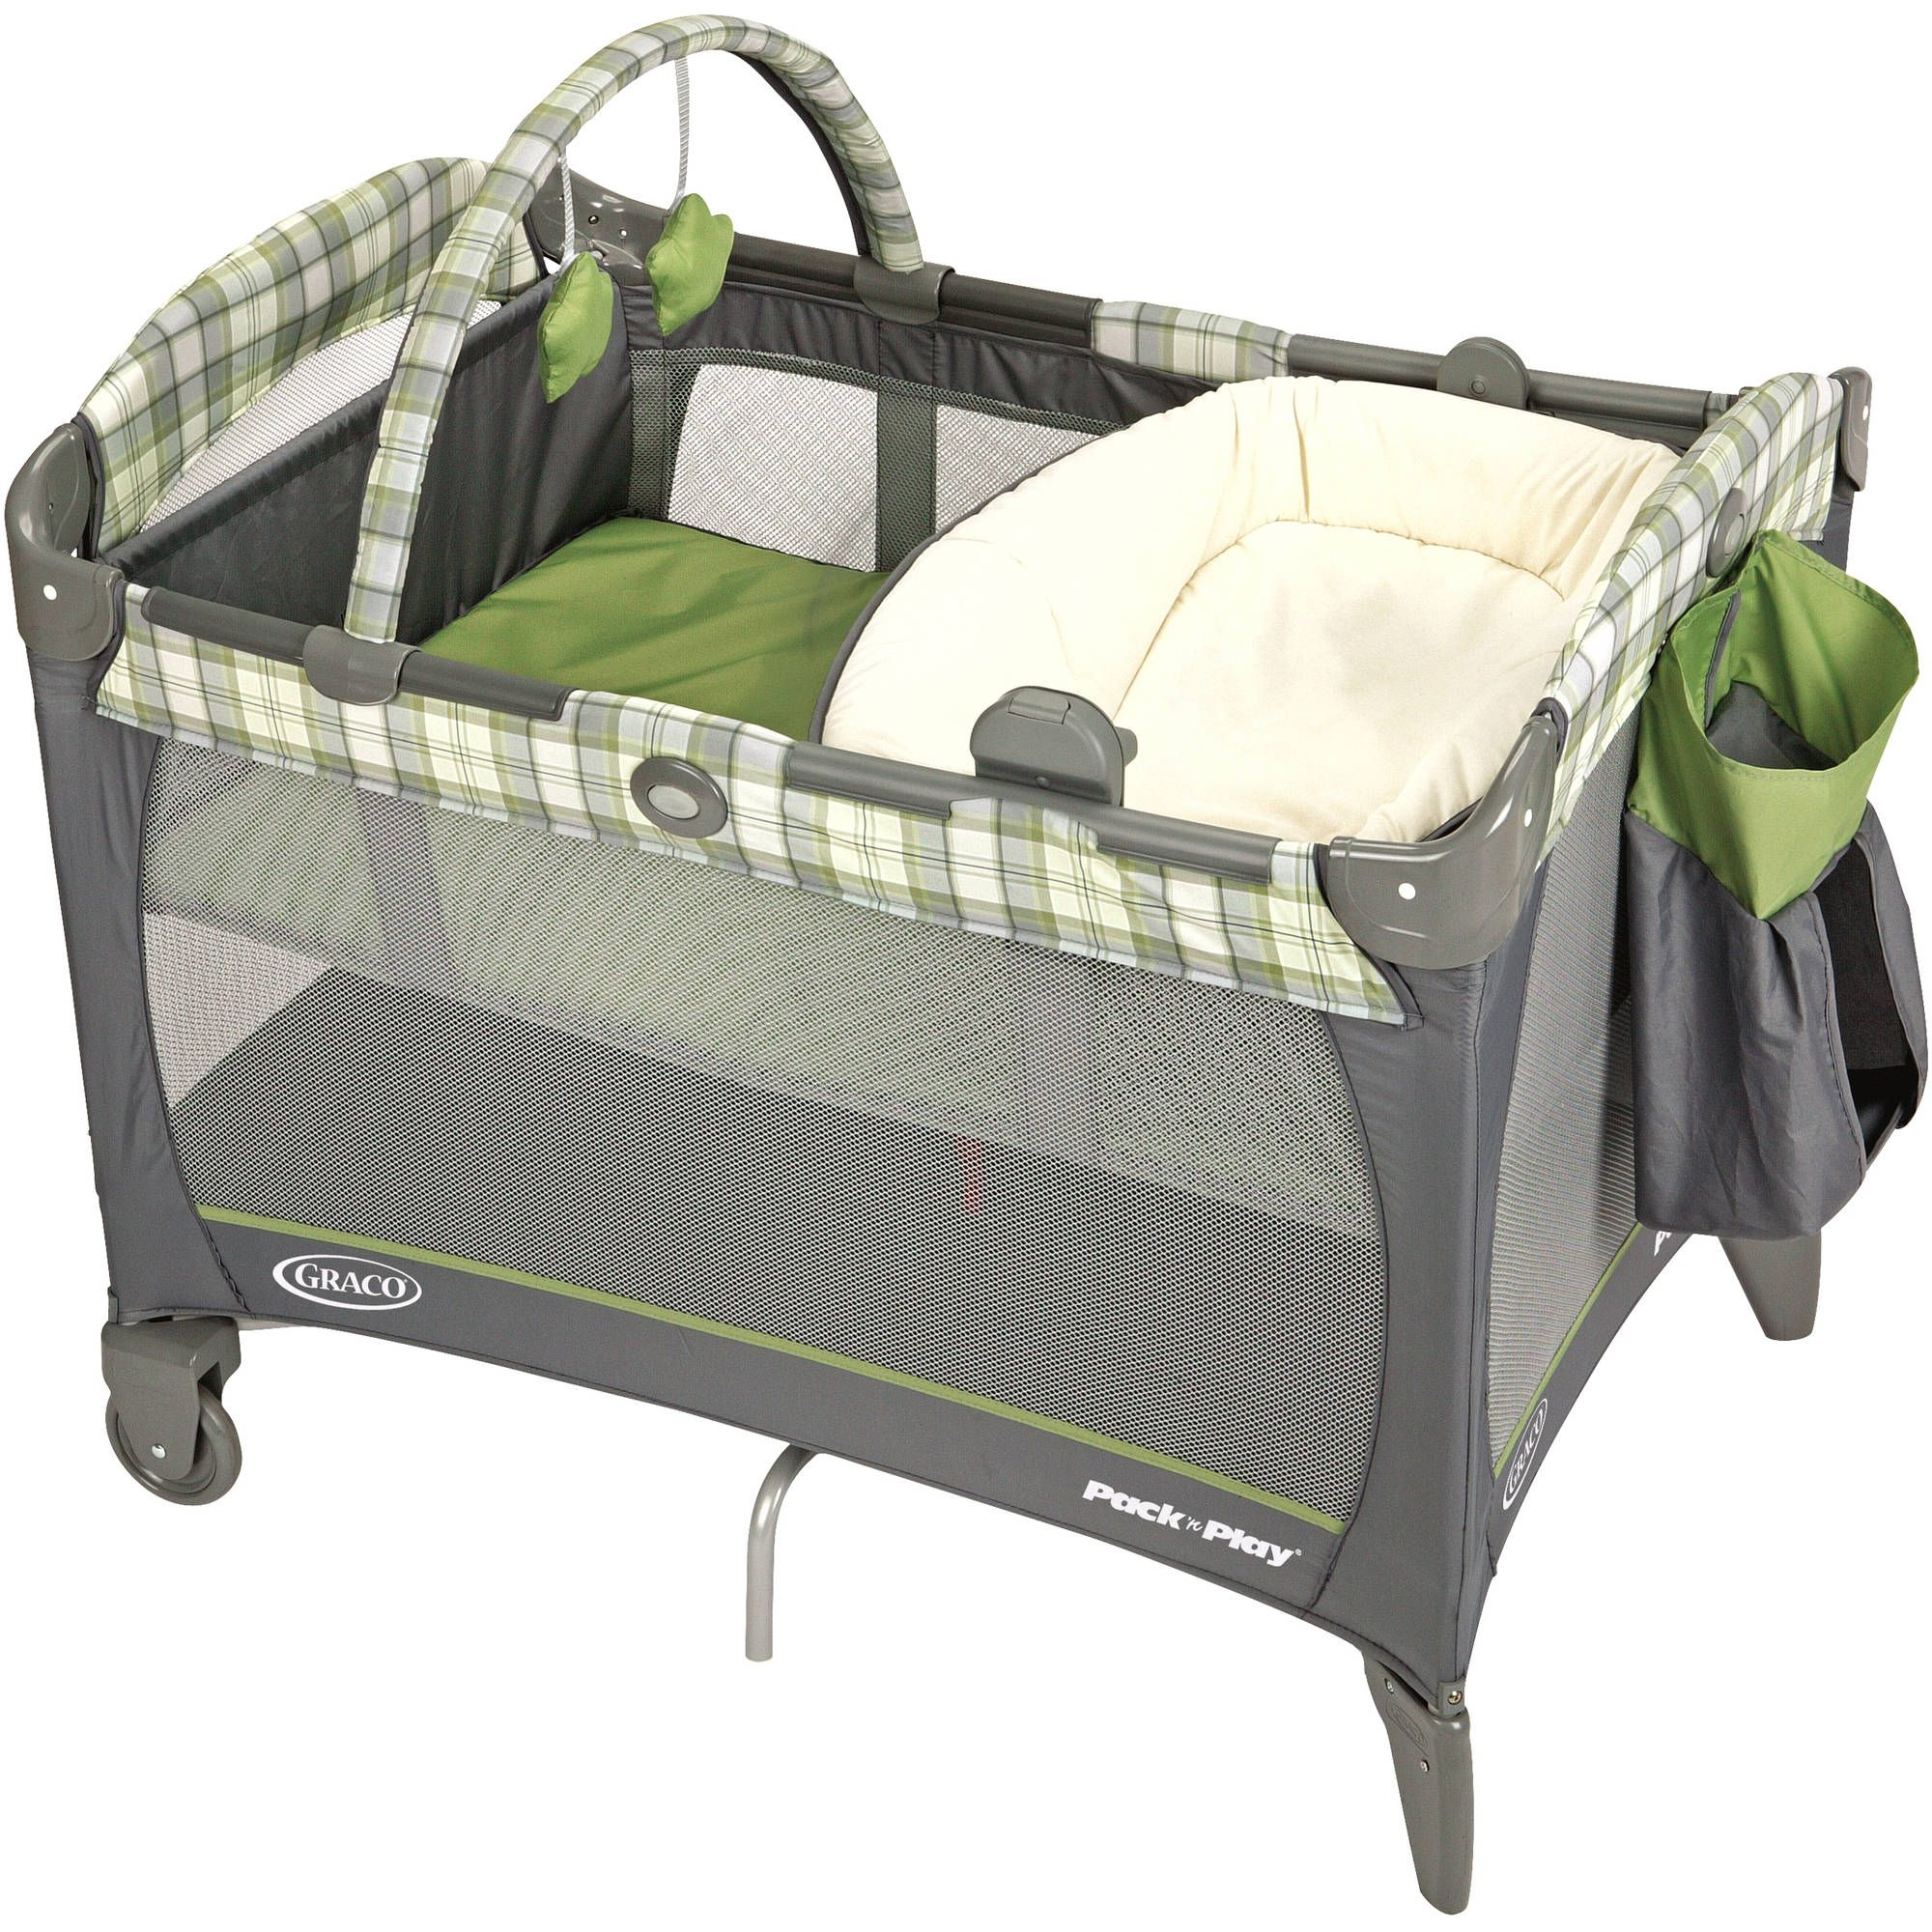 on quotations soft guides and get jersey crib at alibaba com baby portable sheet find shopping travel cribs n line cheap pack playard deals set lotus fitted play cotton